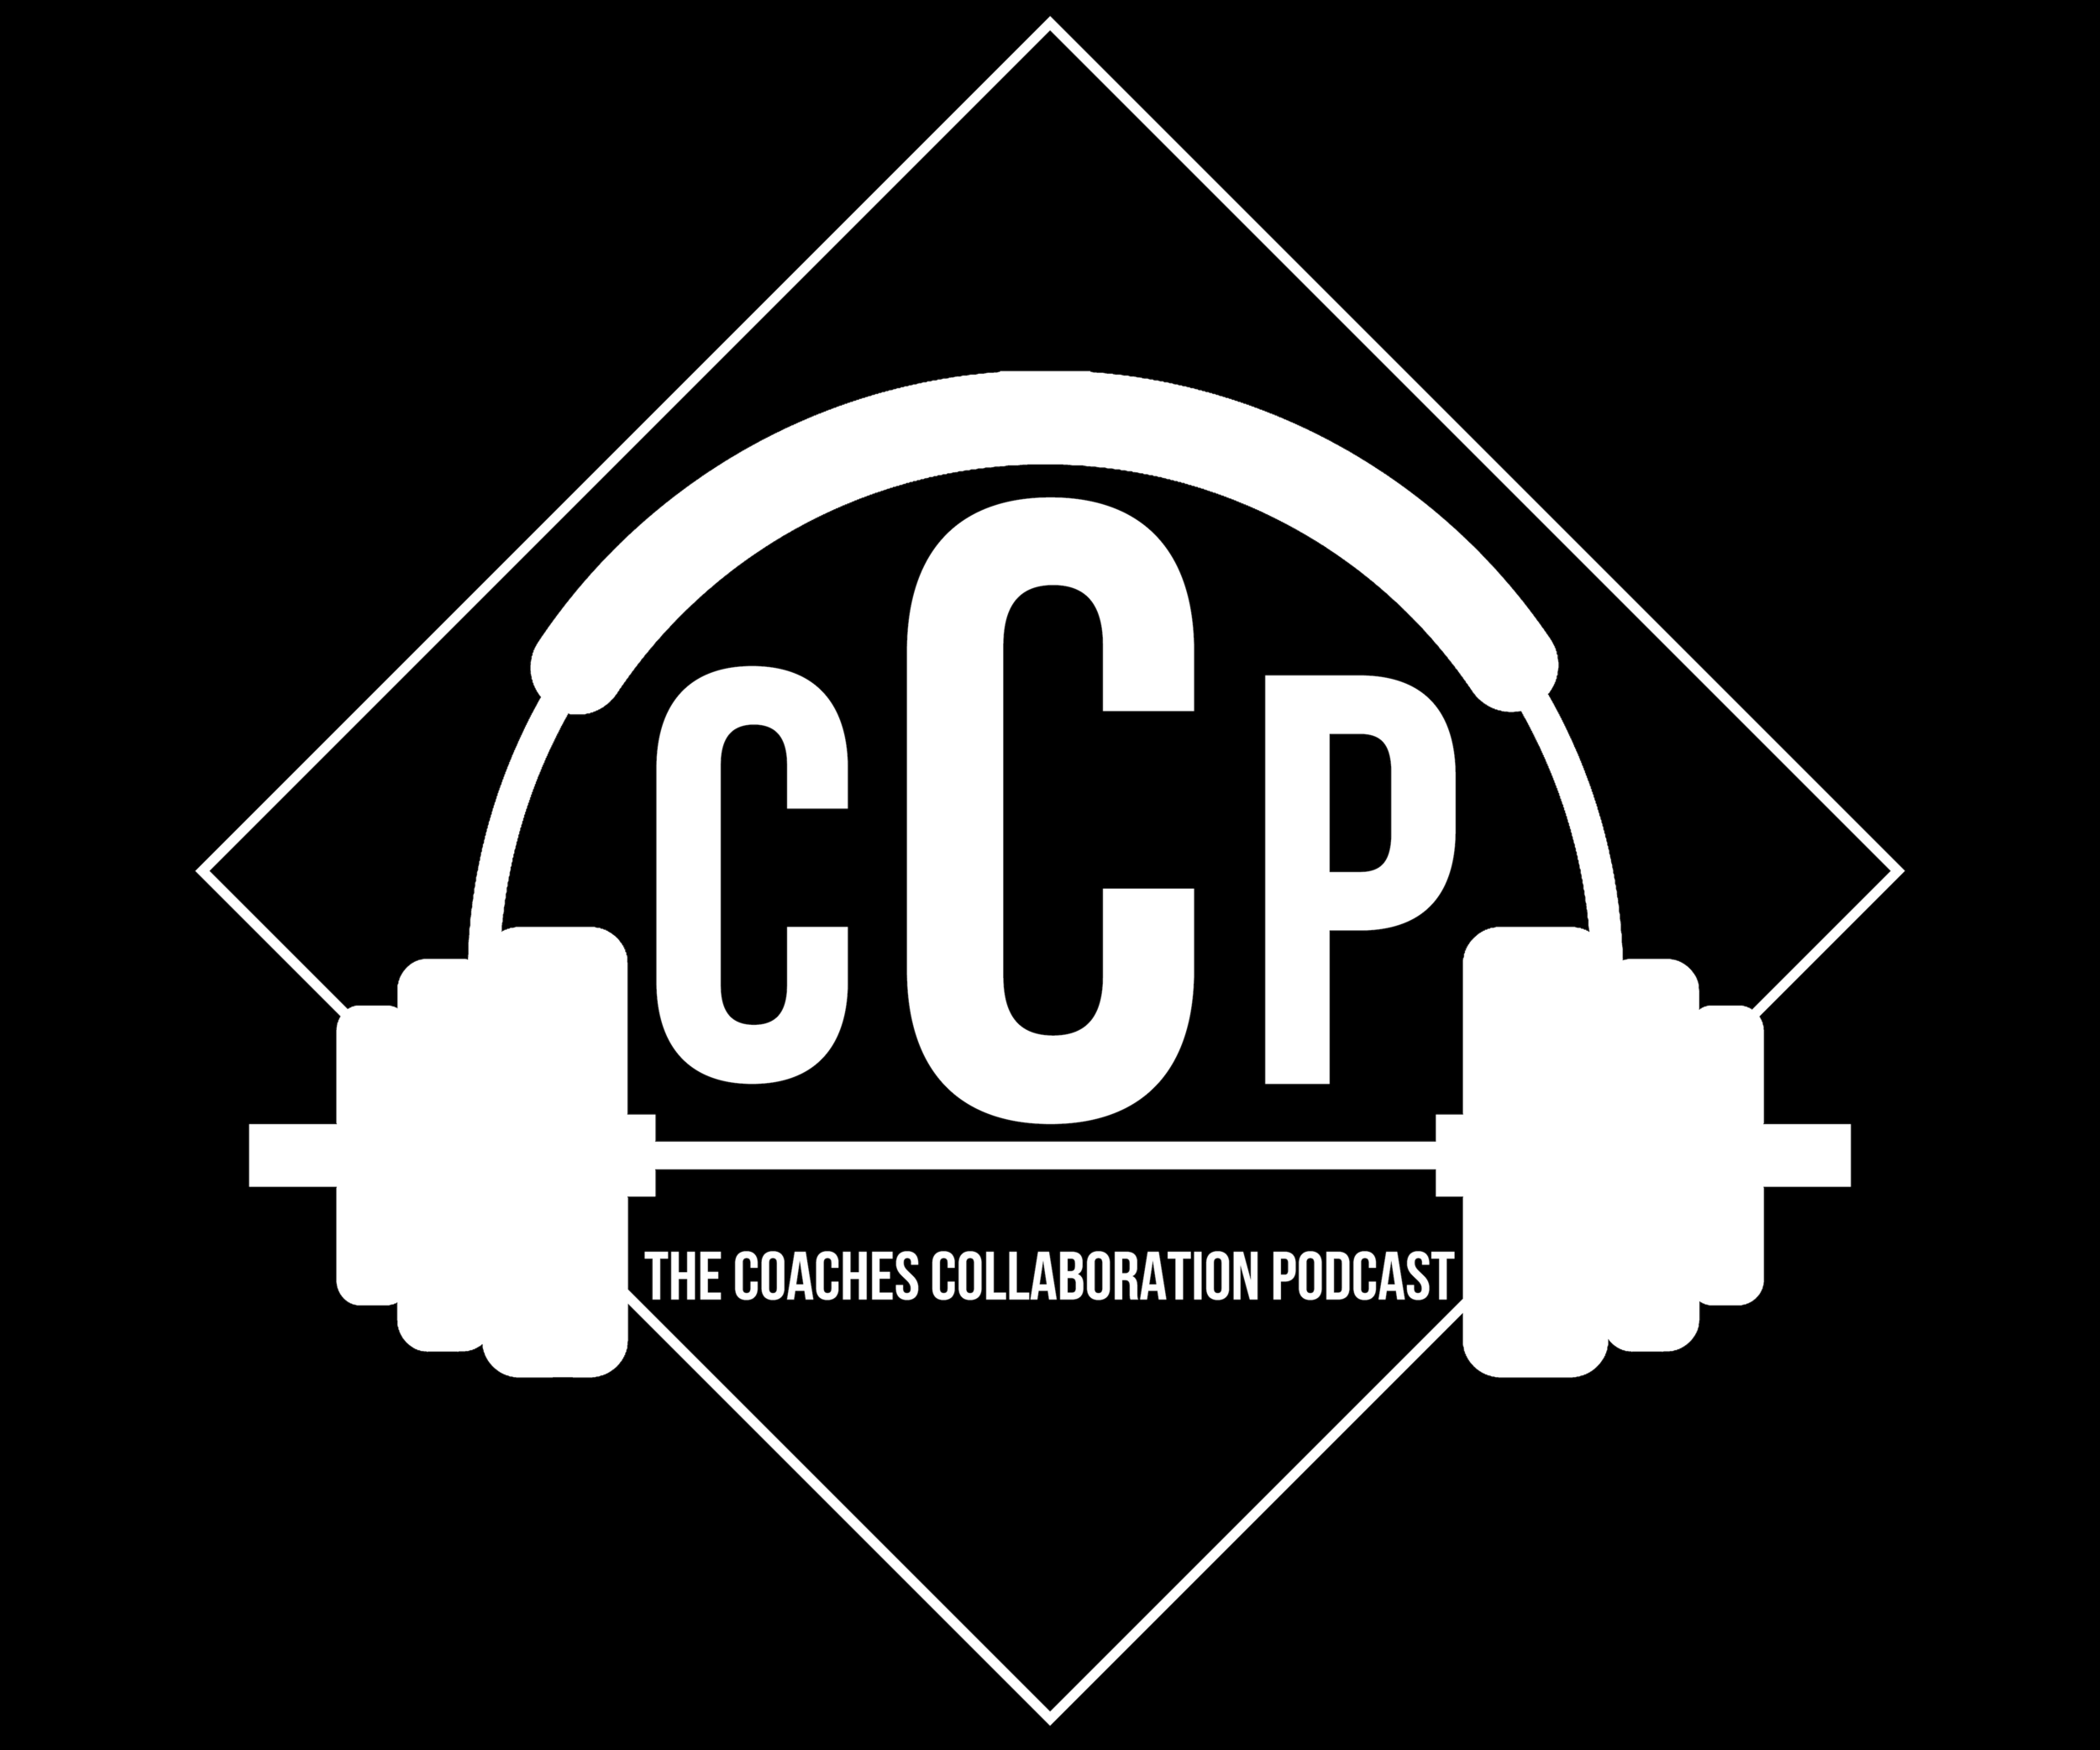 The Coaches Collaboration Podcast - Bringing Coaching Experts TogetherFound on iTunes, Spotify, GooglePlay, & YouTube